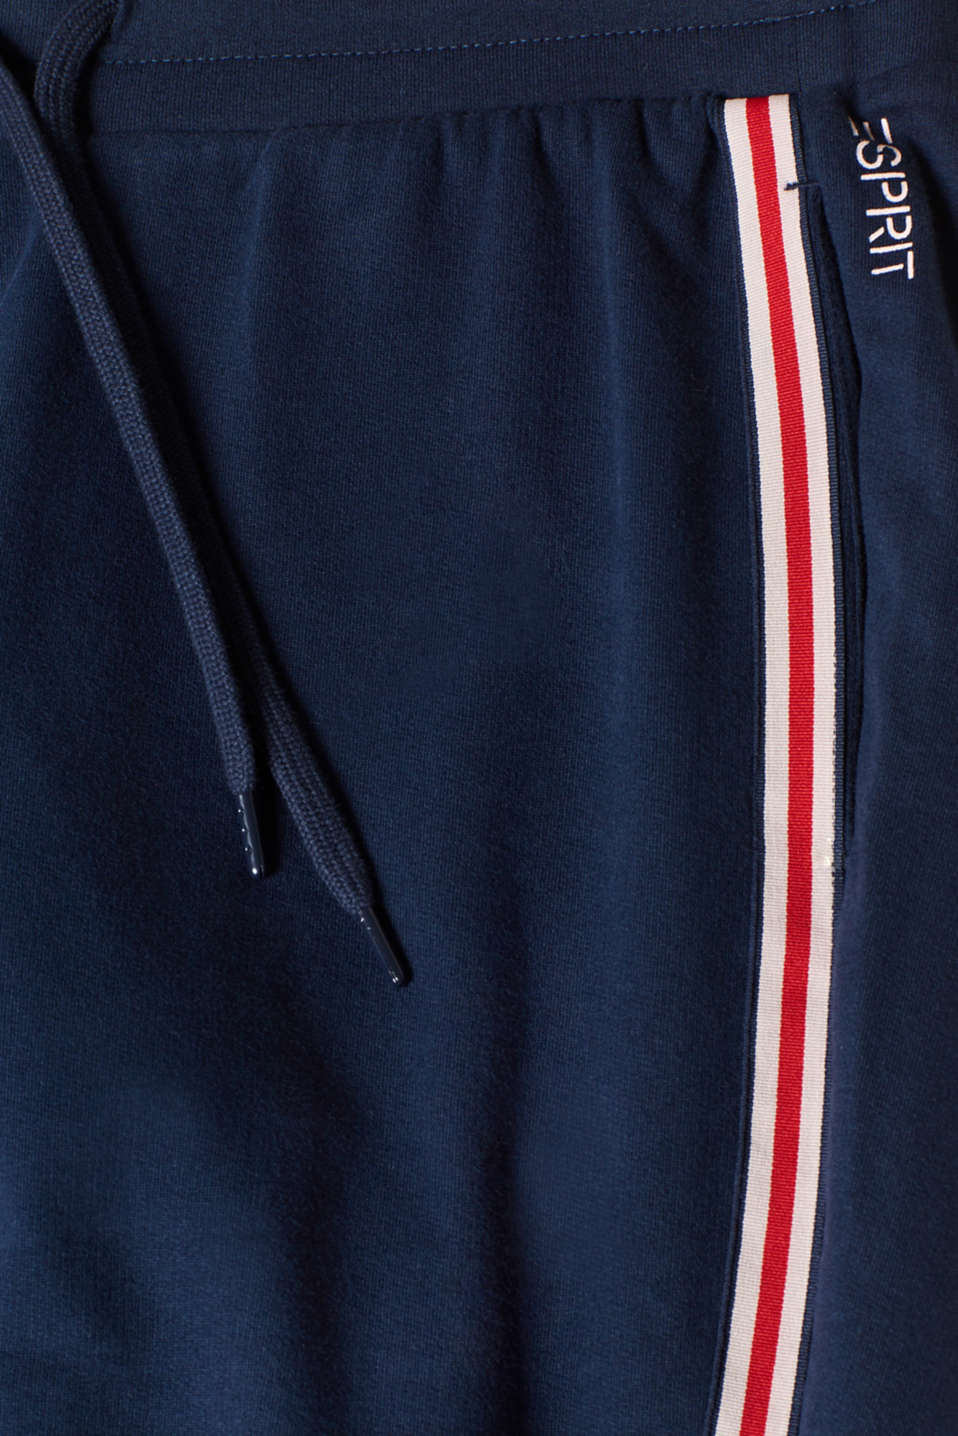 Pants knitted, NAVY, detail image number 4